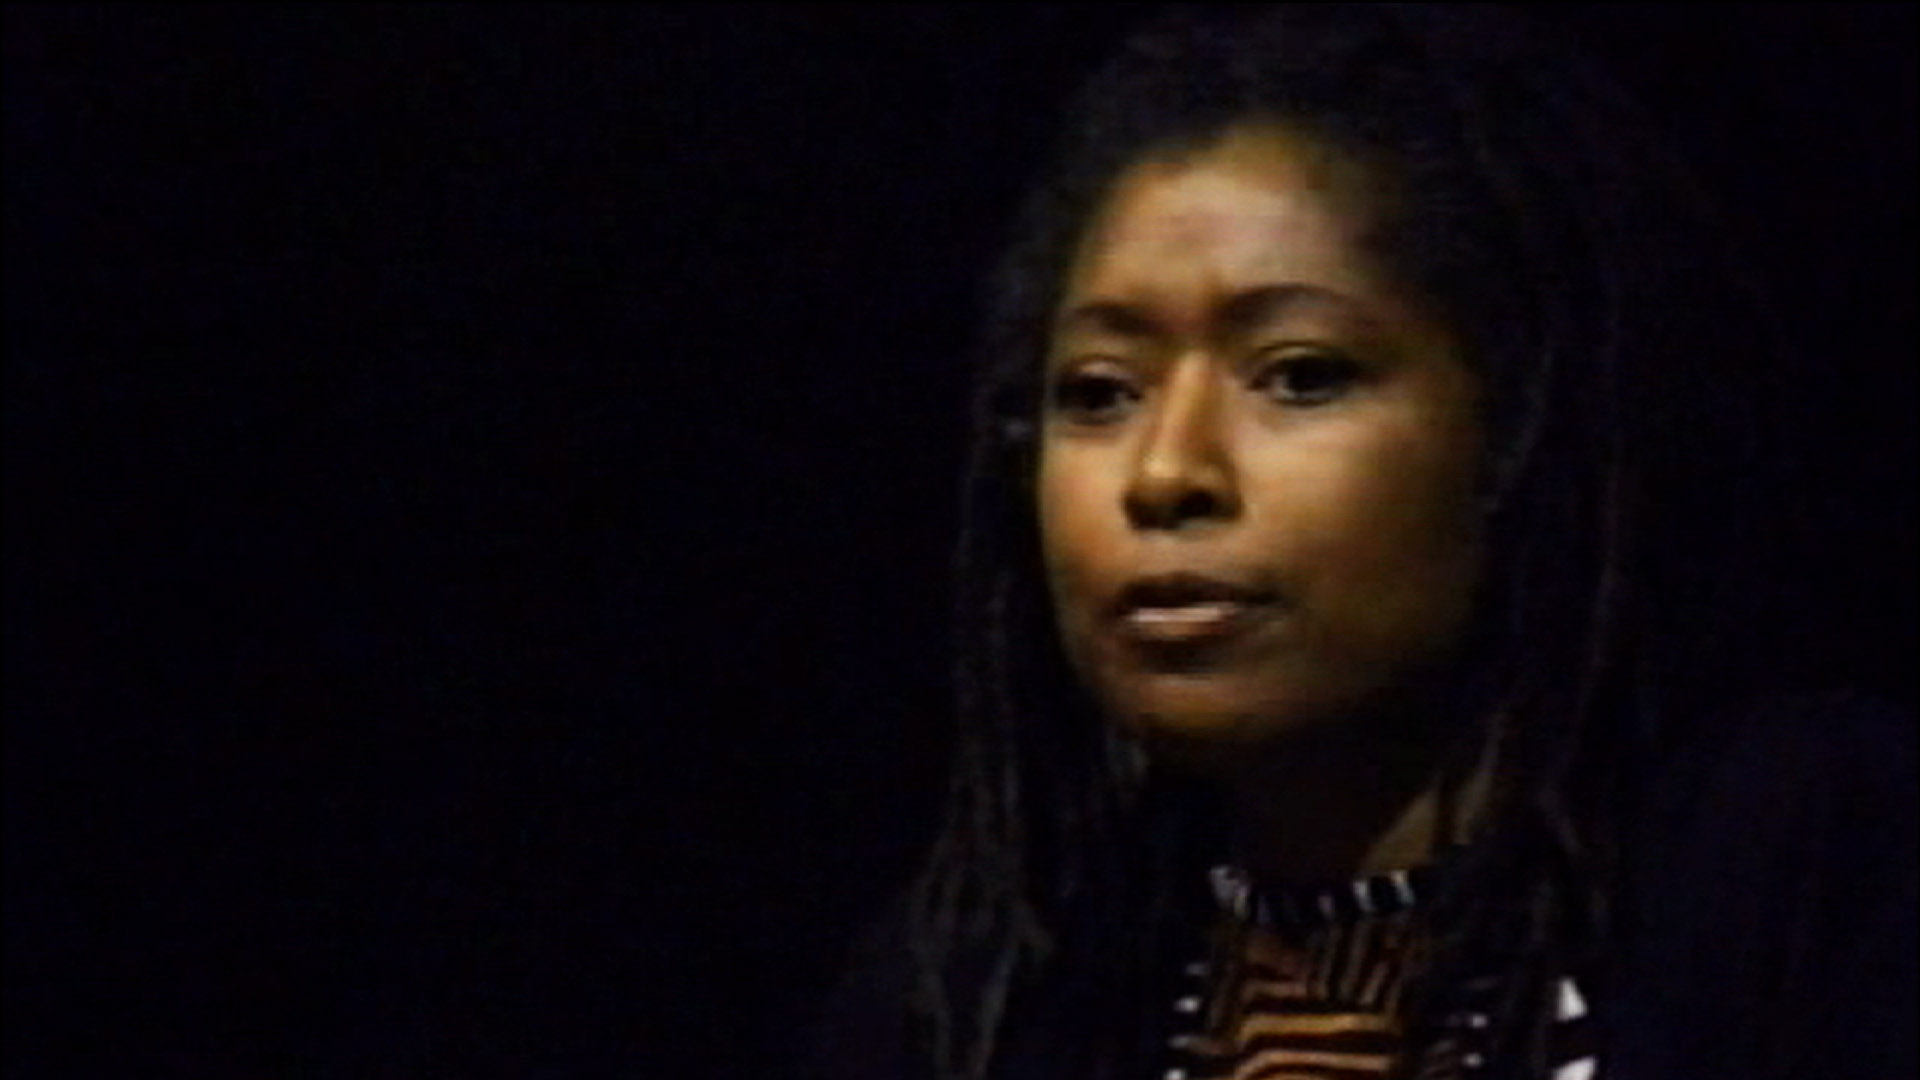 alice walker biography and awards american masters pbs alice walker reads the color purple